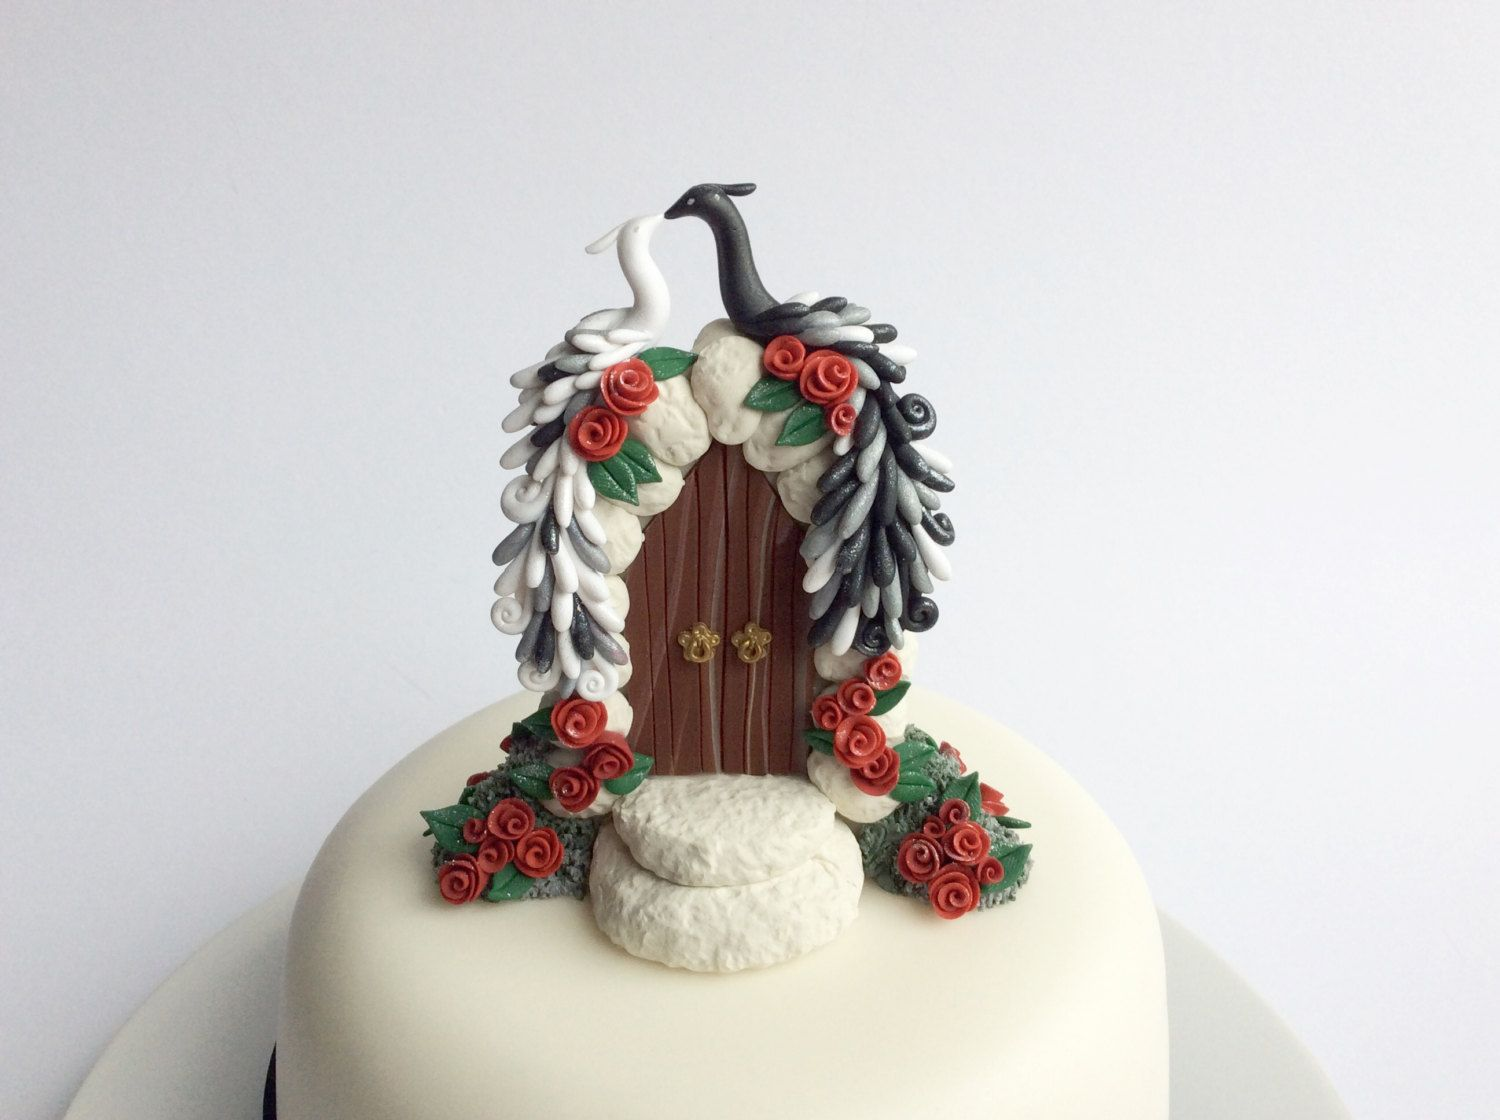 Peacock wedding cake topper in black and white with red roses